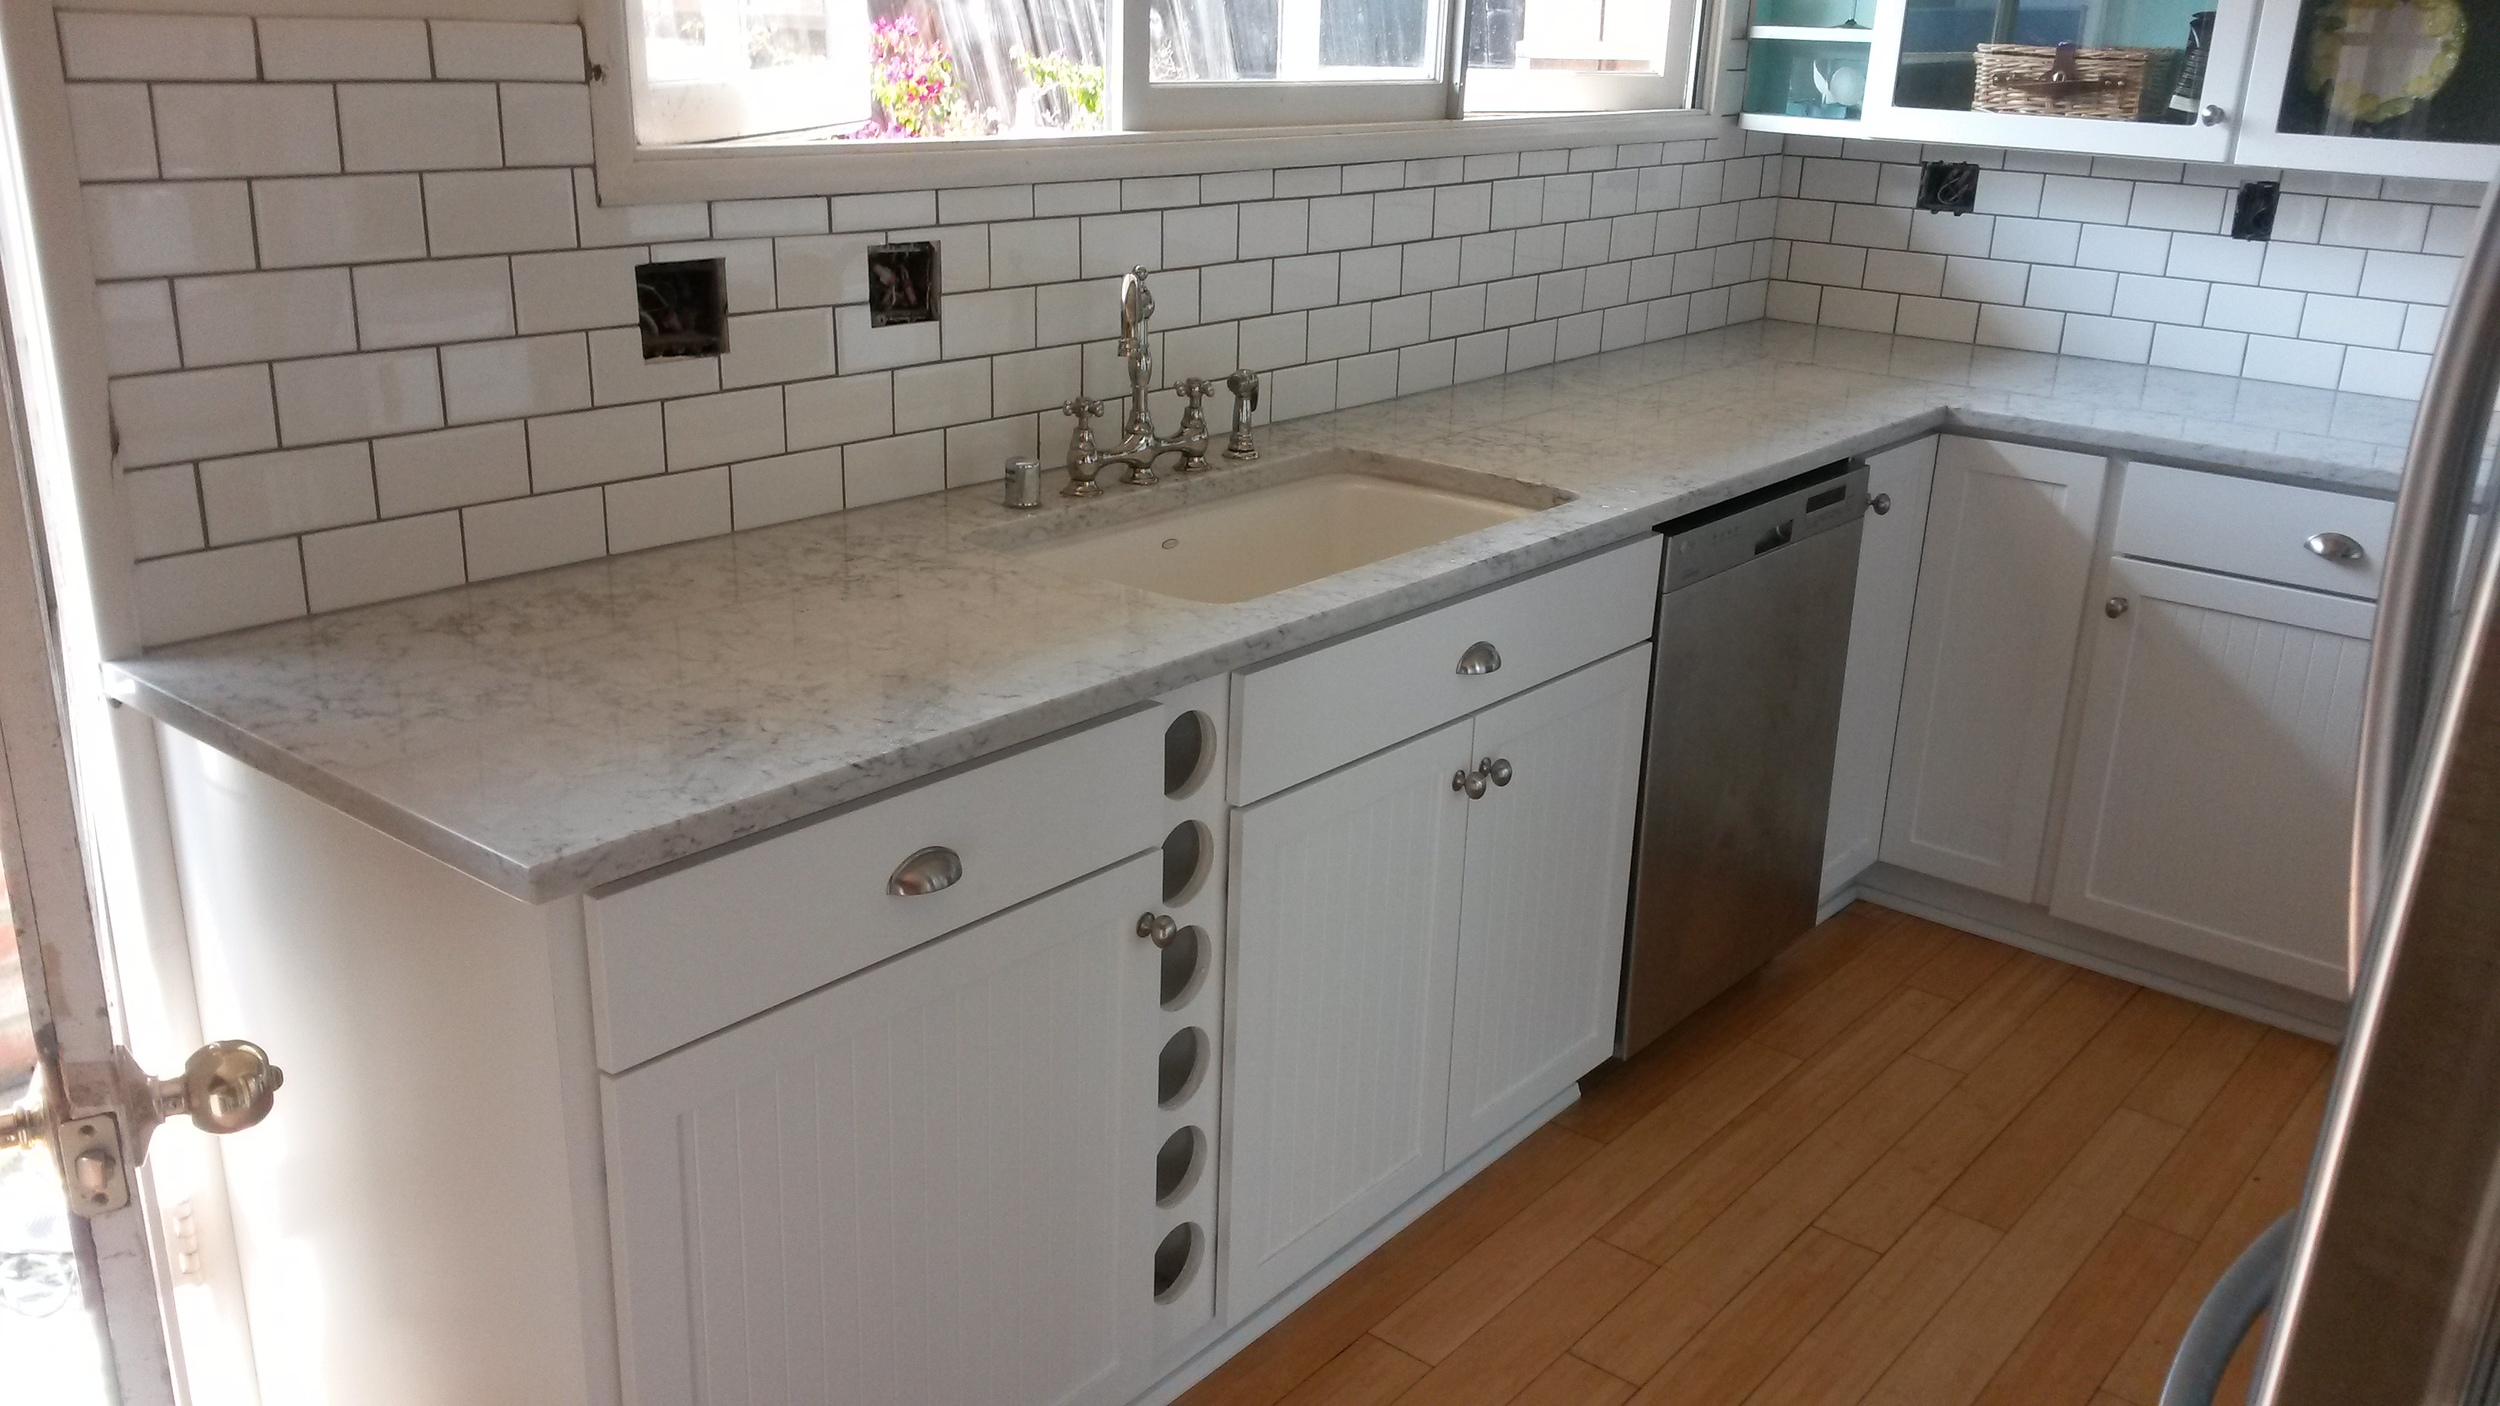 Kitchen Backsplash w 1 and 2.jpg